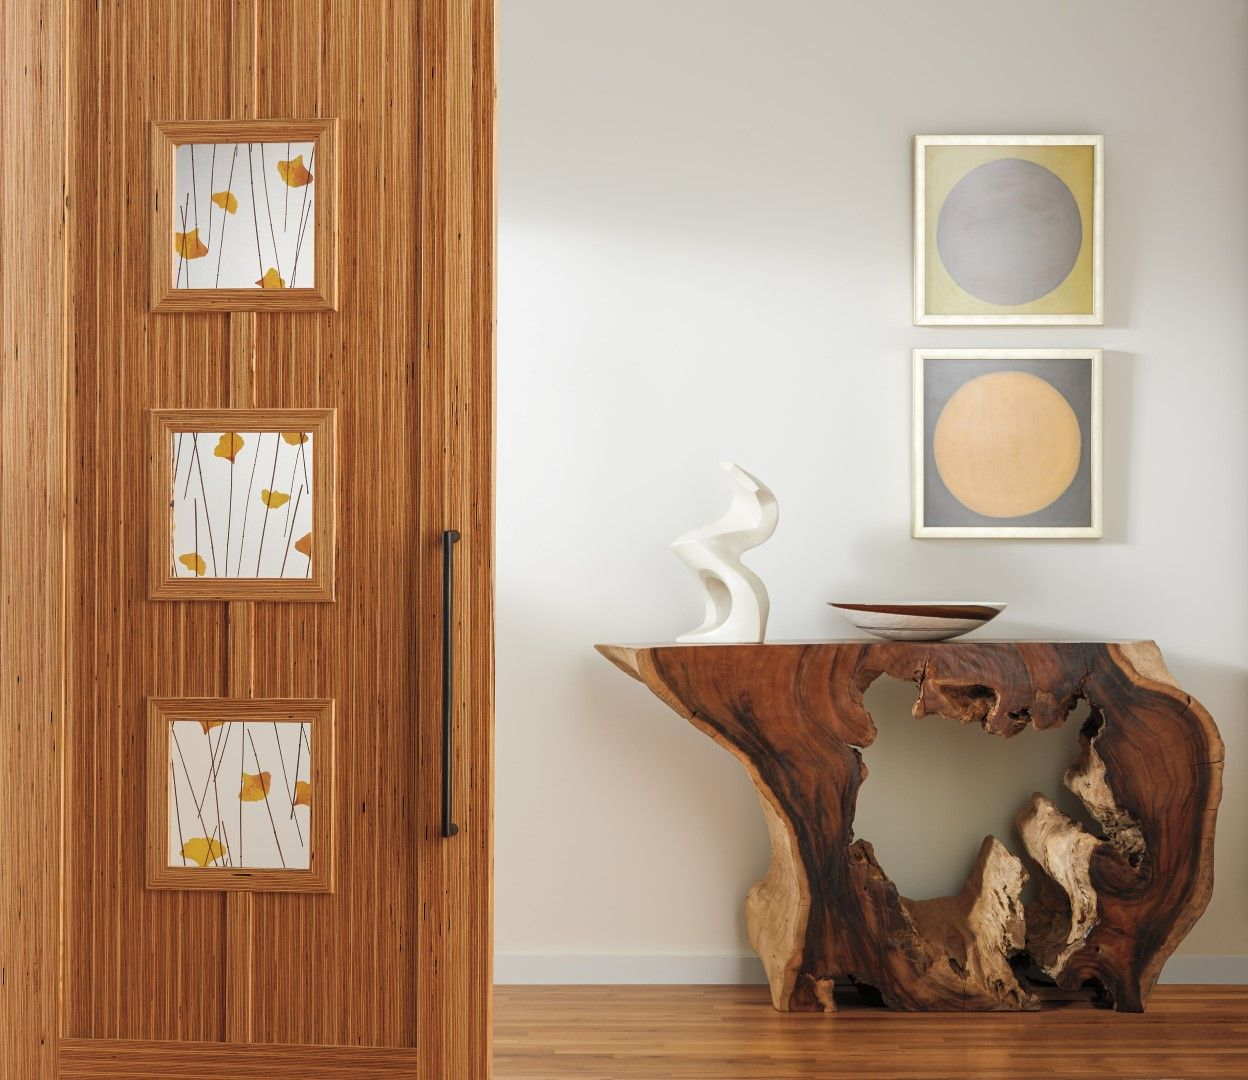 TruStile Contemporary Door Collection - AD1030 in LVL wood ...